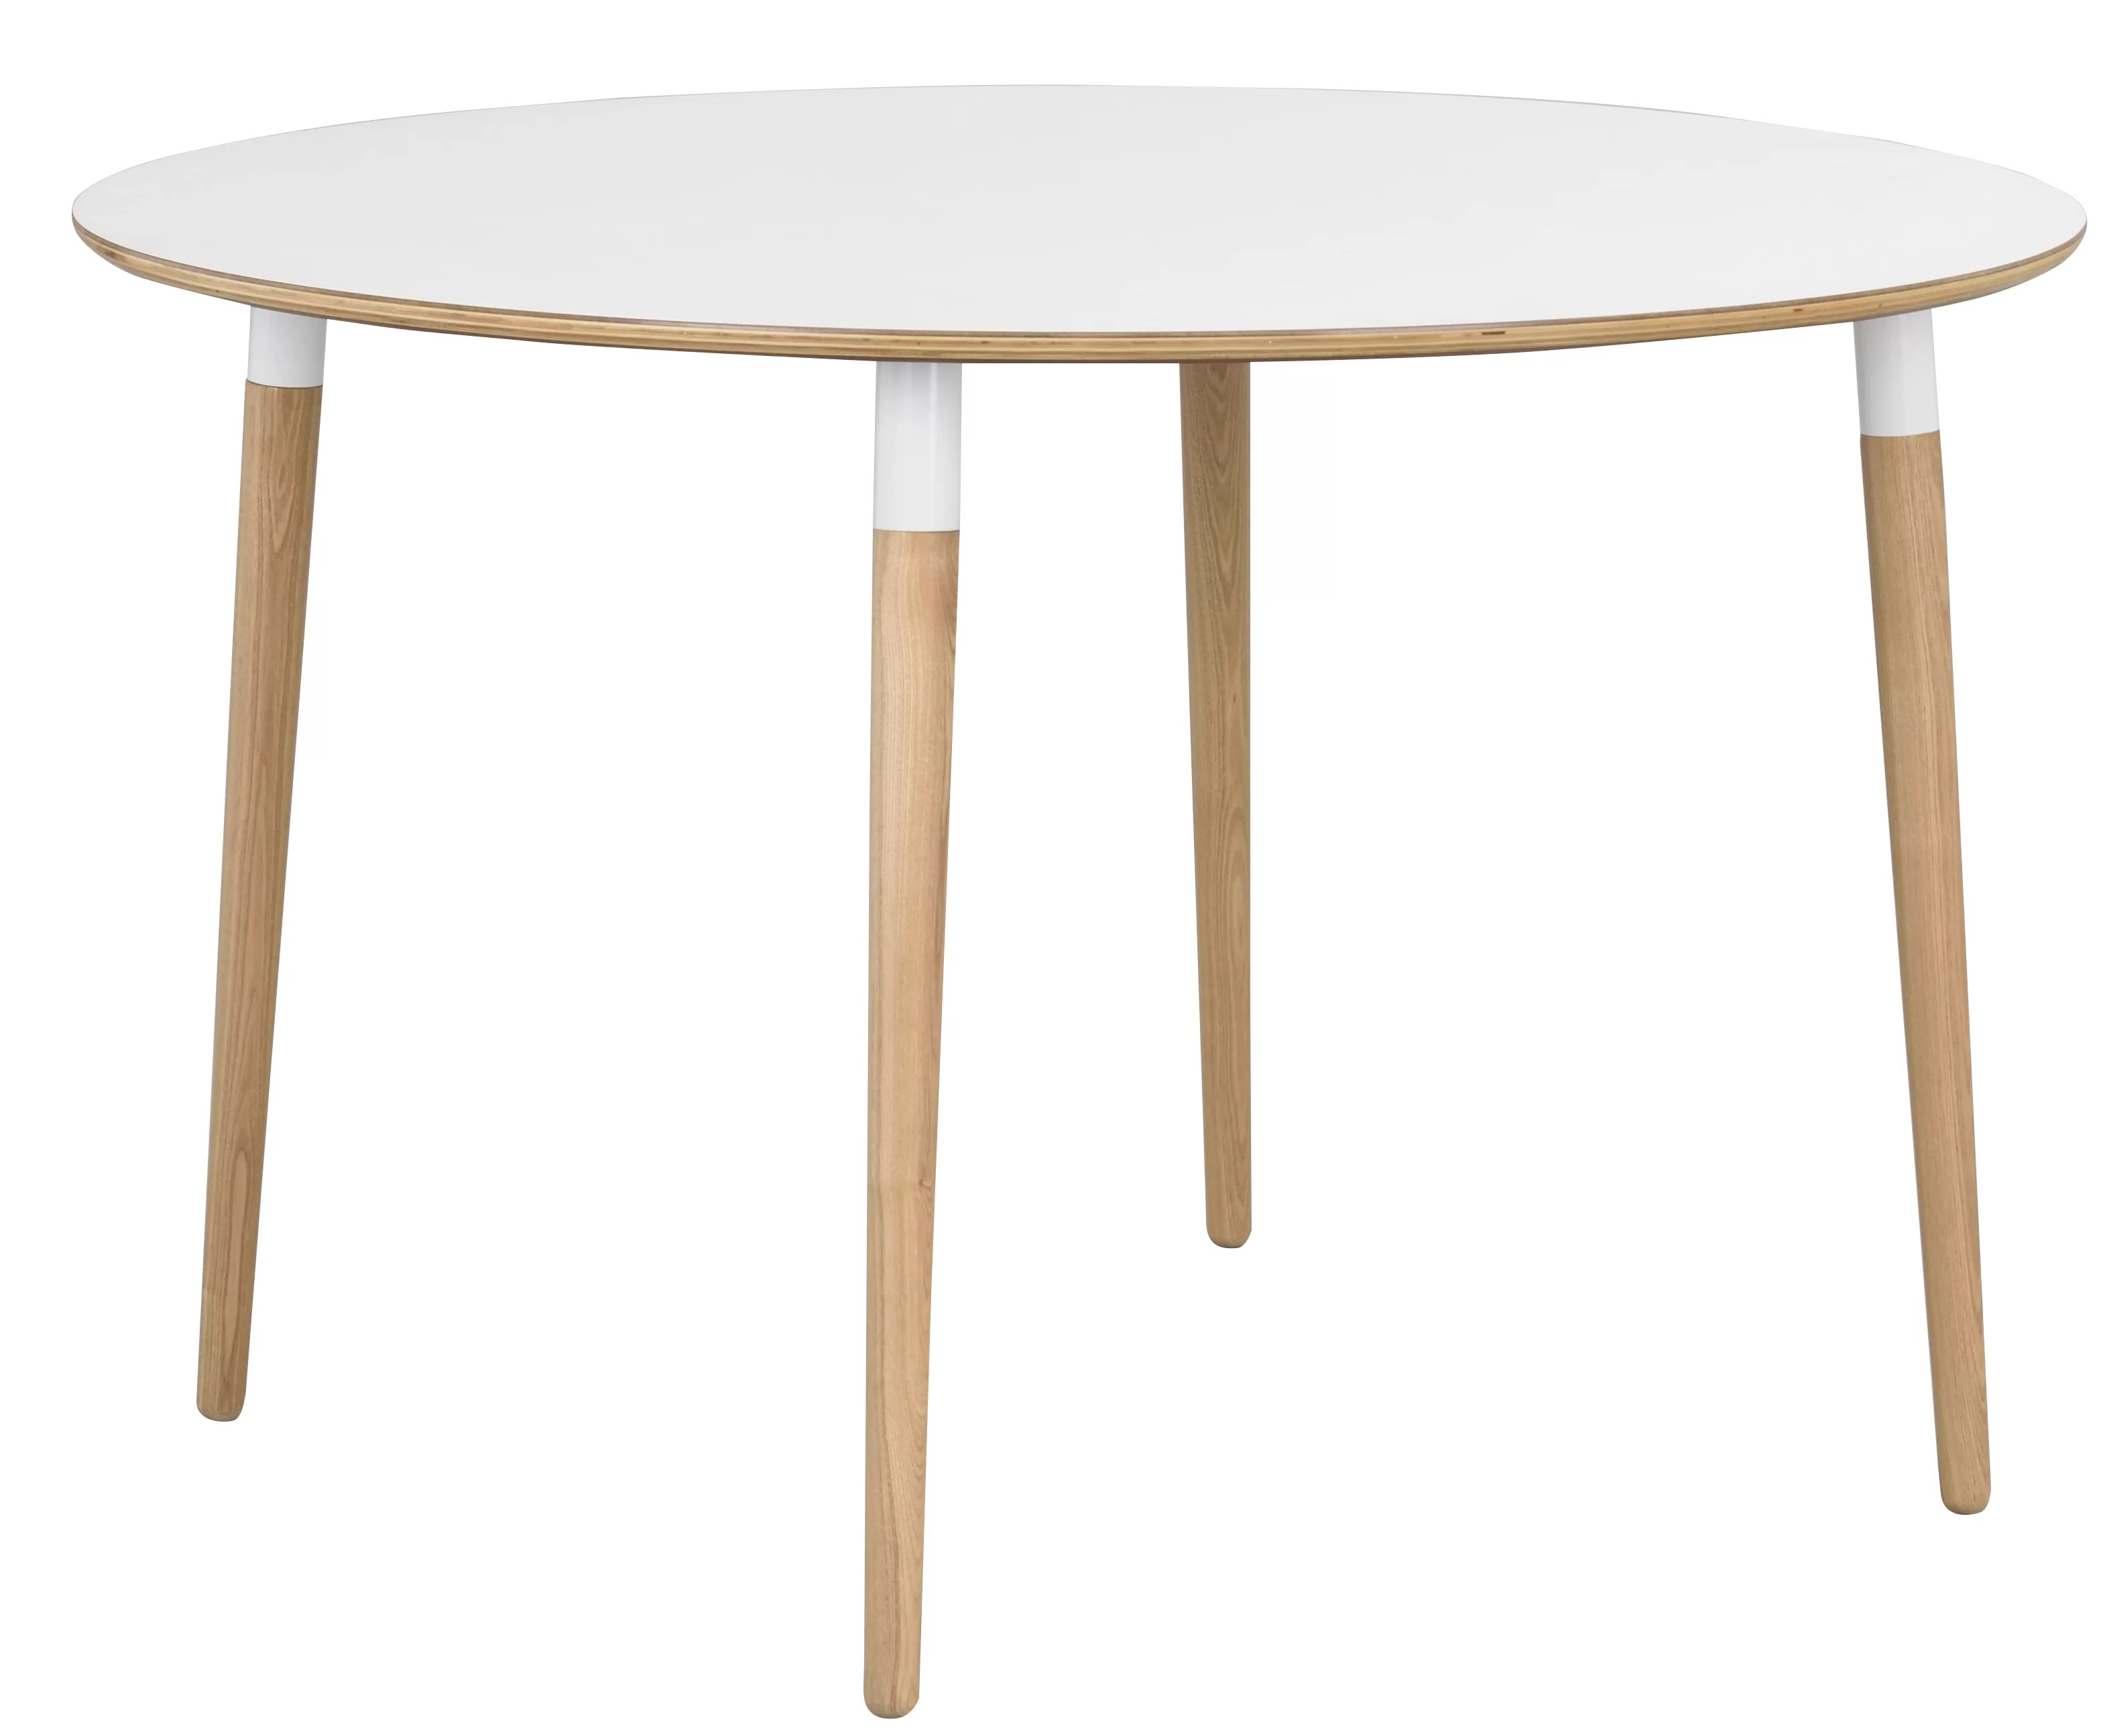 The Wood Times Couchtisch Fusion Round Legs Dining Table